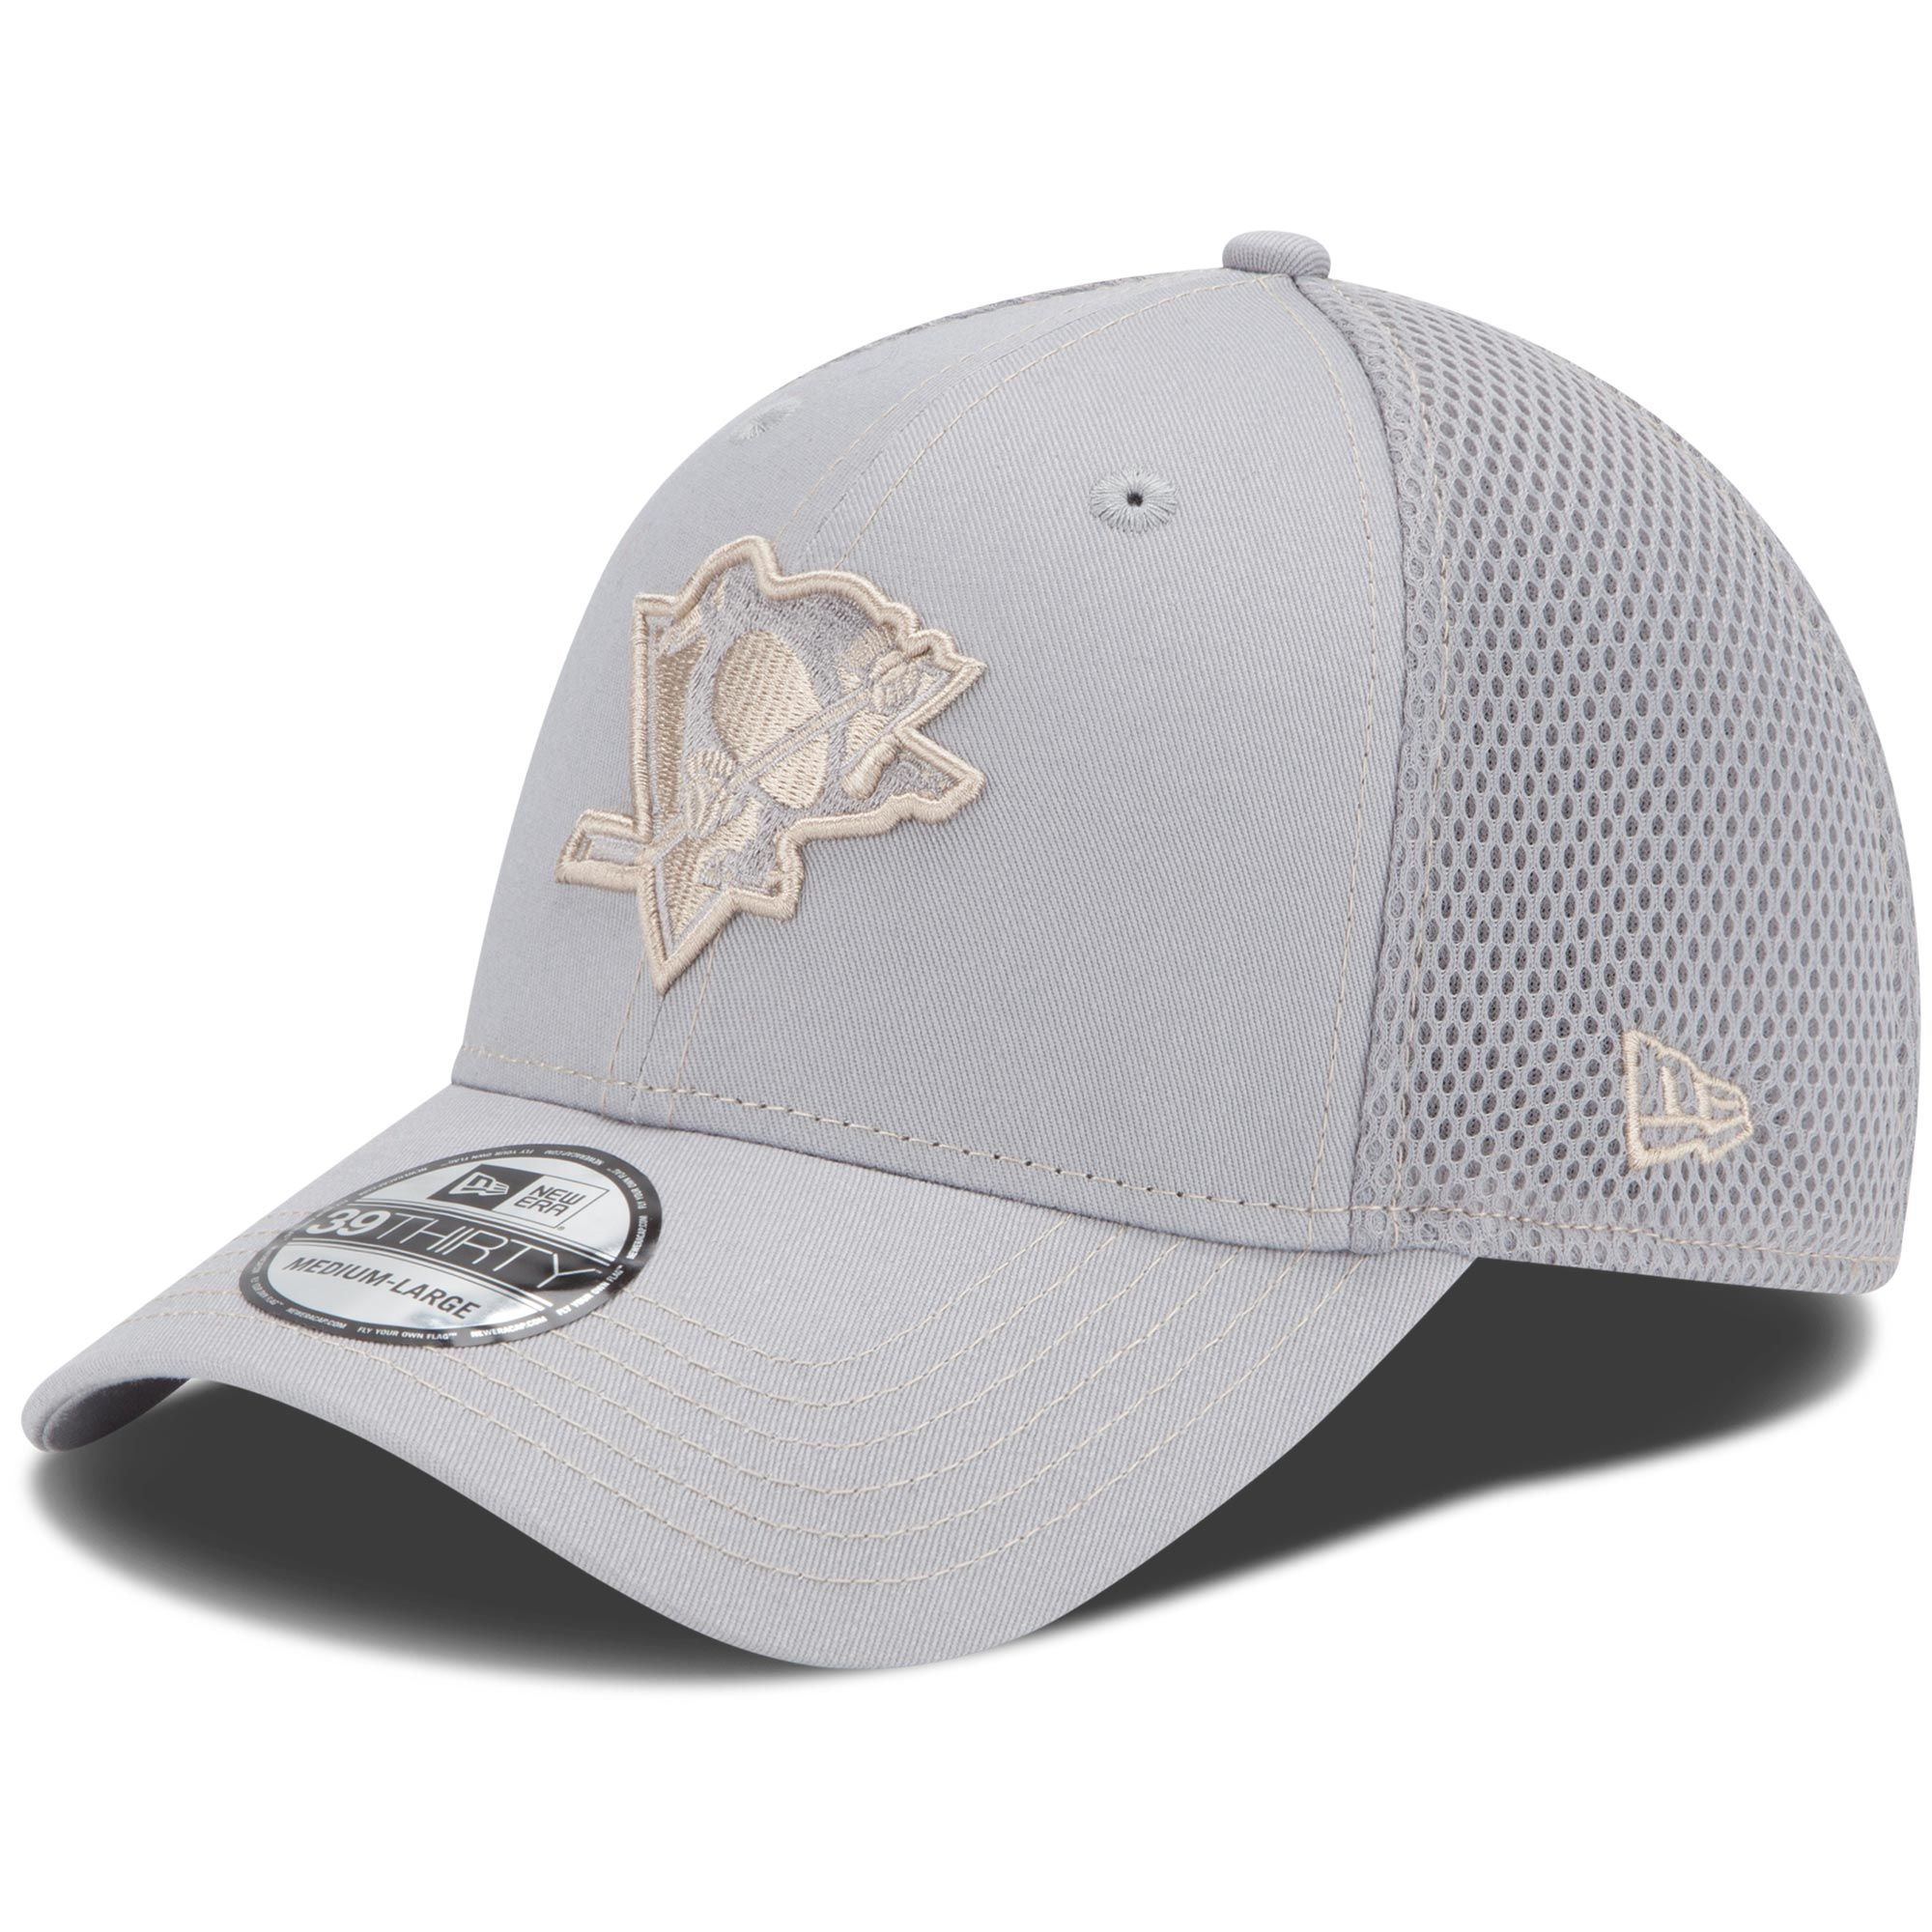 6029bd629e8 New Era Pittsburgh Penguins 39THIRTY Neo Stretch Fit Hat - Gray ...